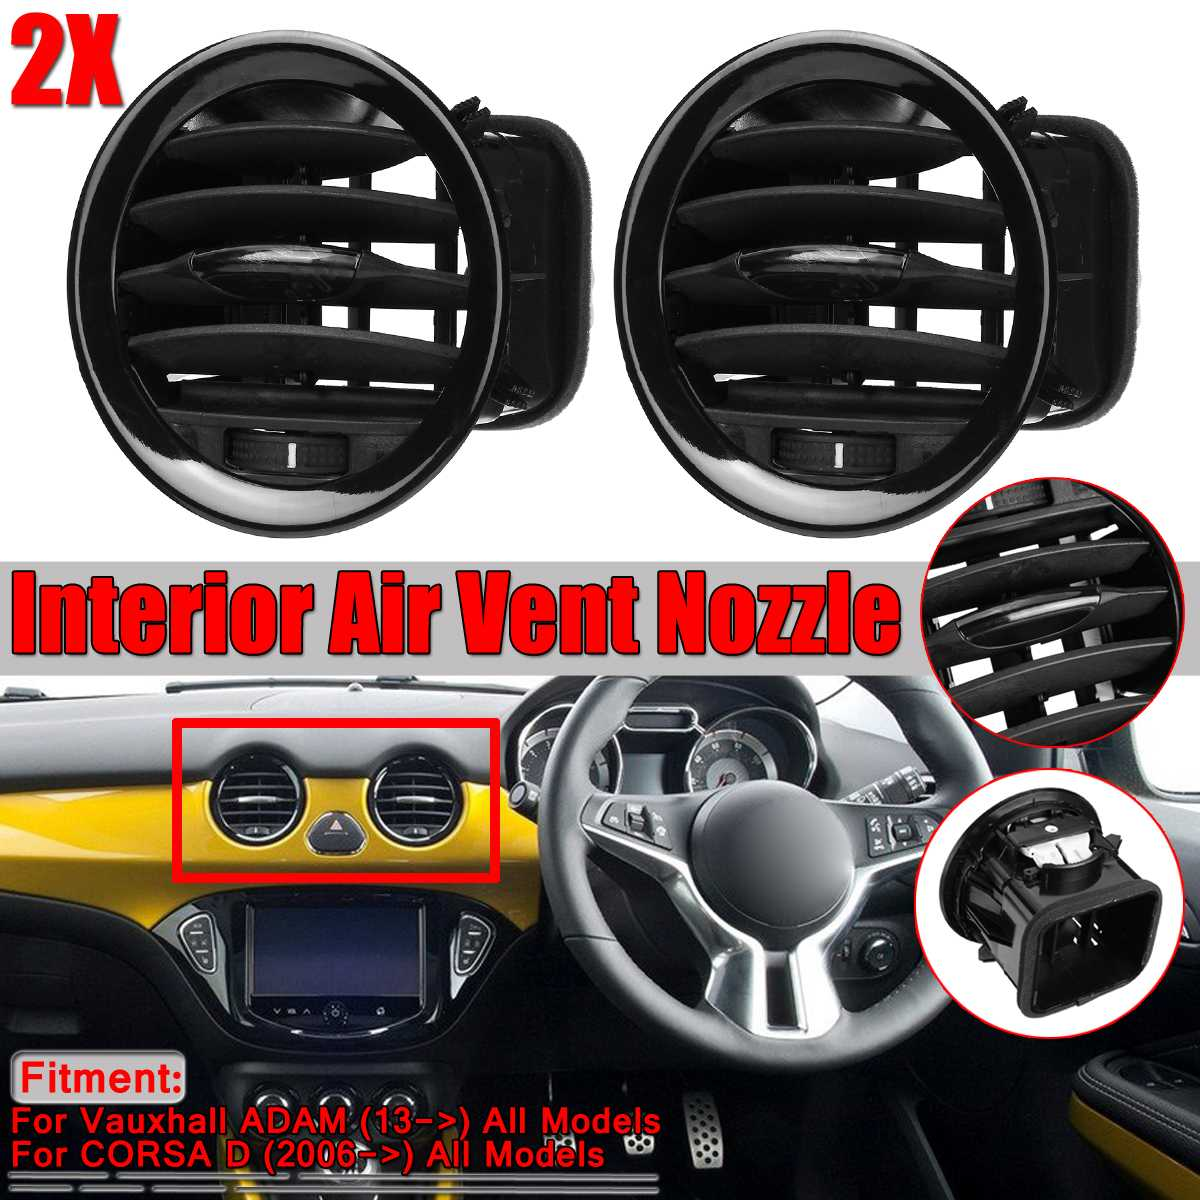 Nieuwe Auto Interieur Heater EEN/C Air Vent Cover Outlet Grille Voor Vauxhall Opel ADAM/CORSA D MK3 airconditioning Vents Trim Covers